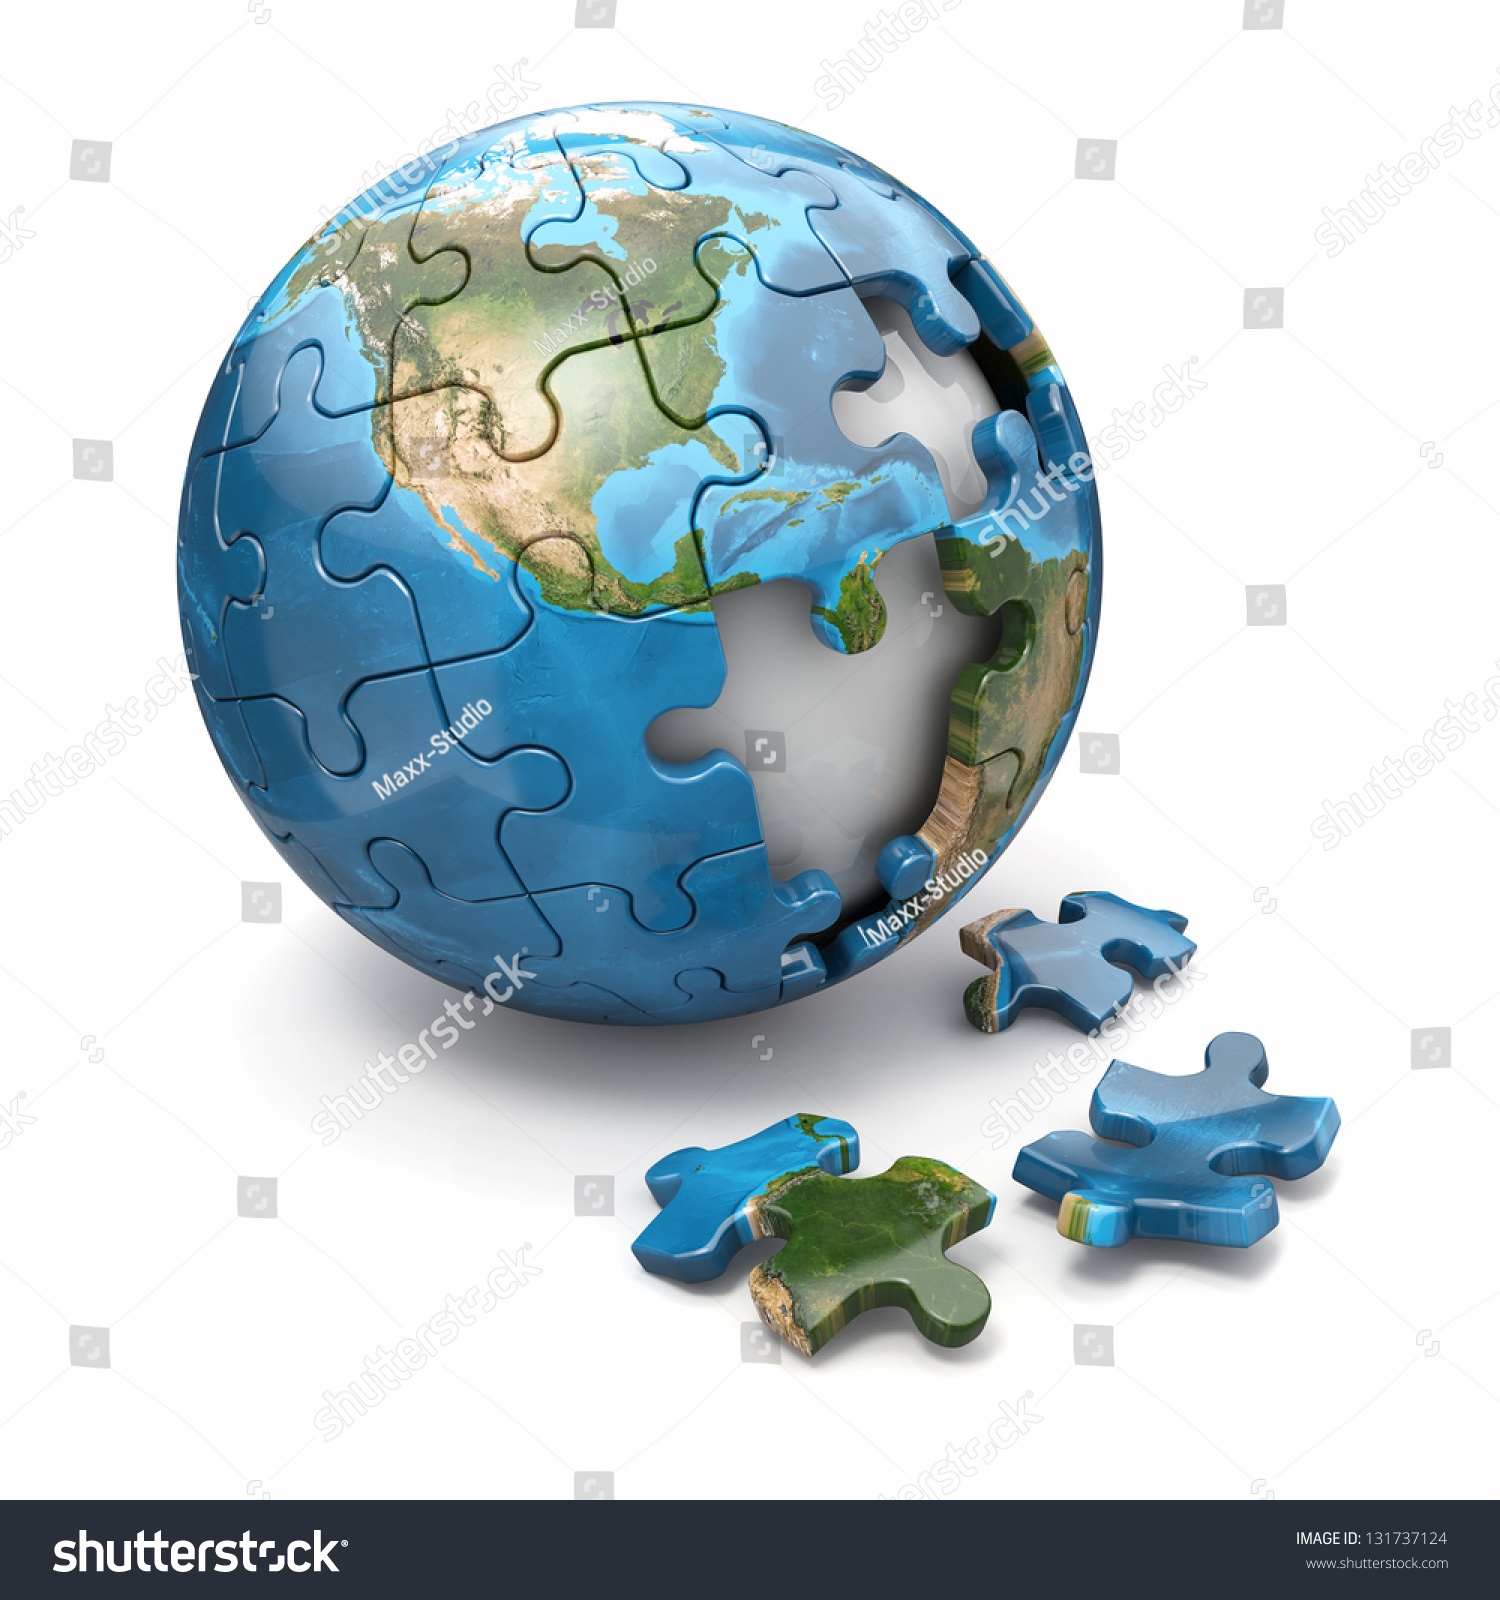 concept of globalization Basic concepts of globalization concept: increase trade equals more jobs for americans at higher wages truth: factories can increase exports without hiring more employers.